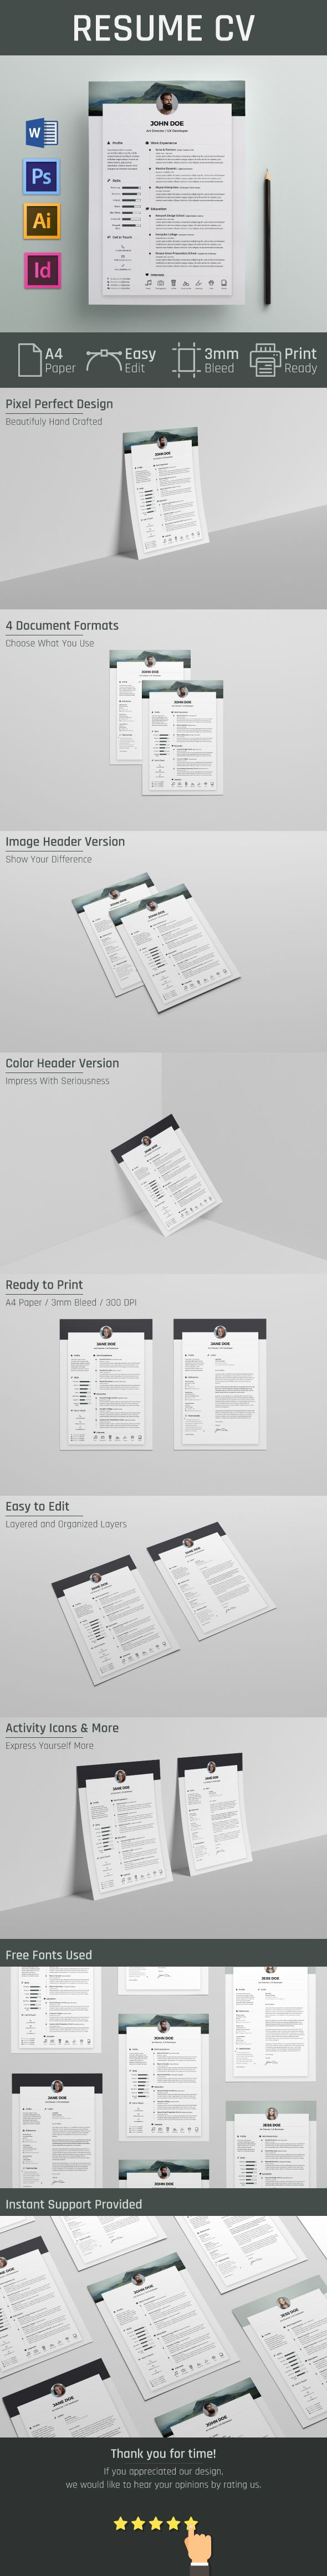 sample letter of interest for adjunct faculty%0A Check out this  Behance project   u   cFree Resume   CV Template u   d https